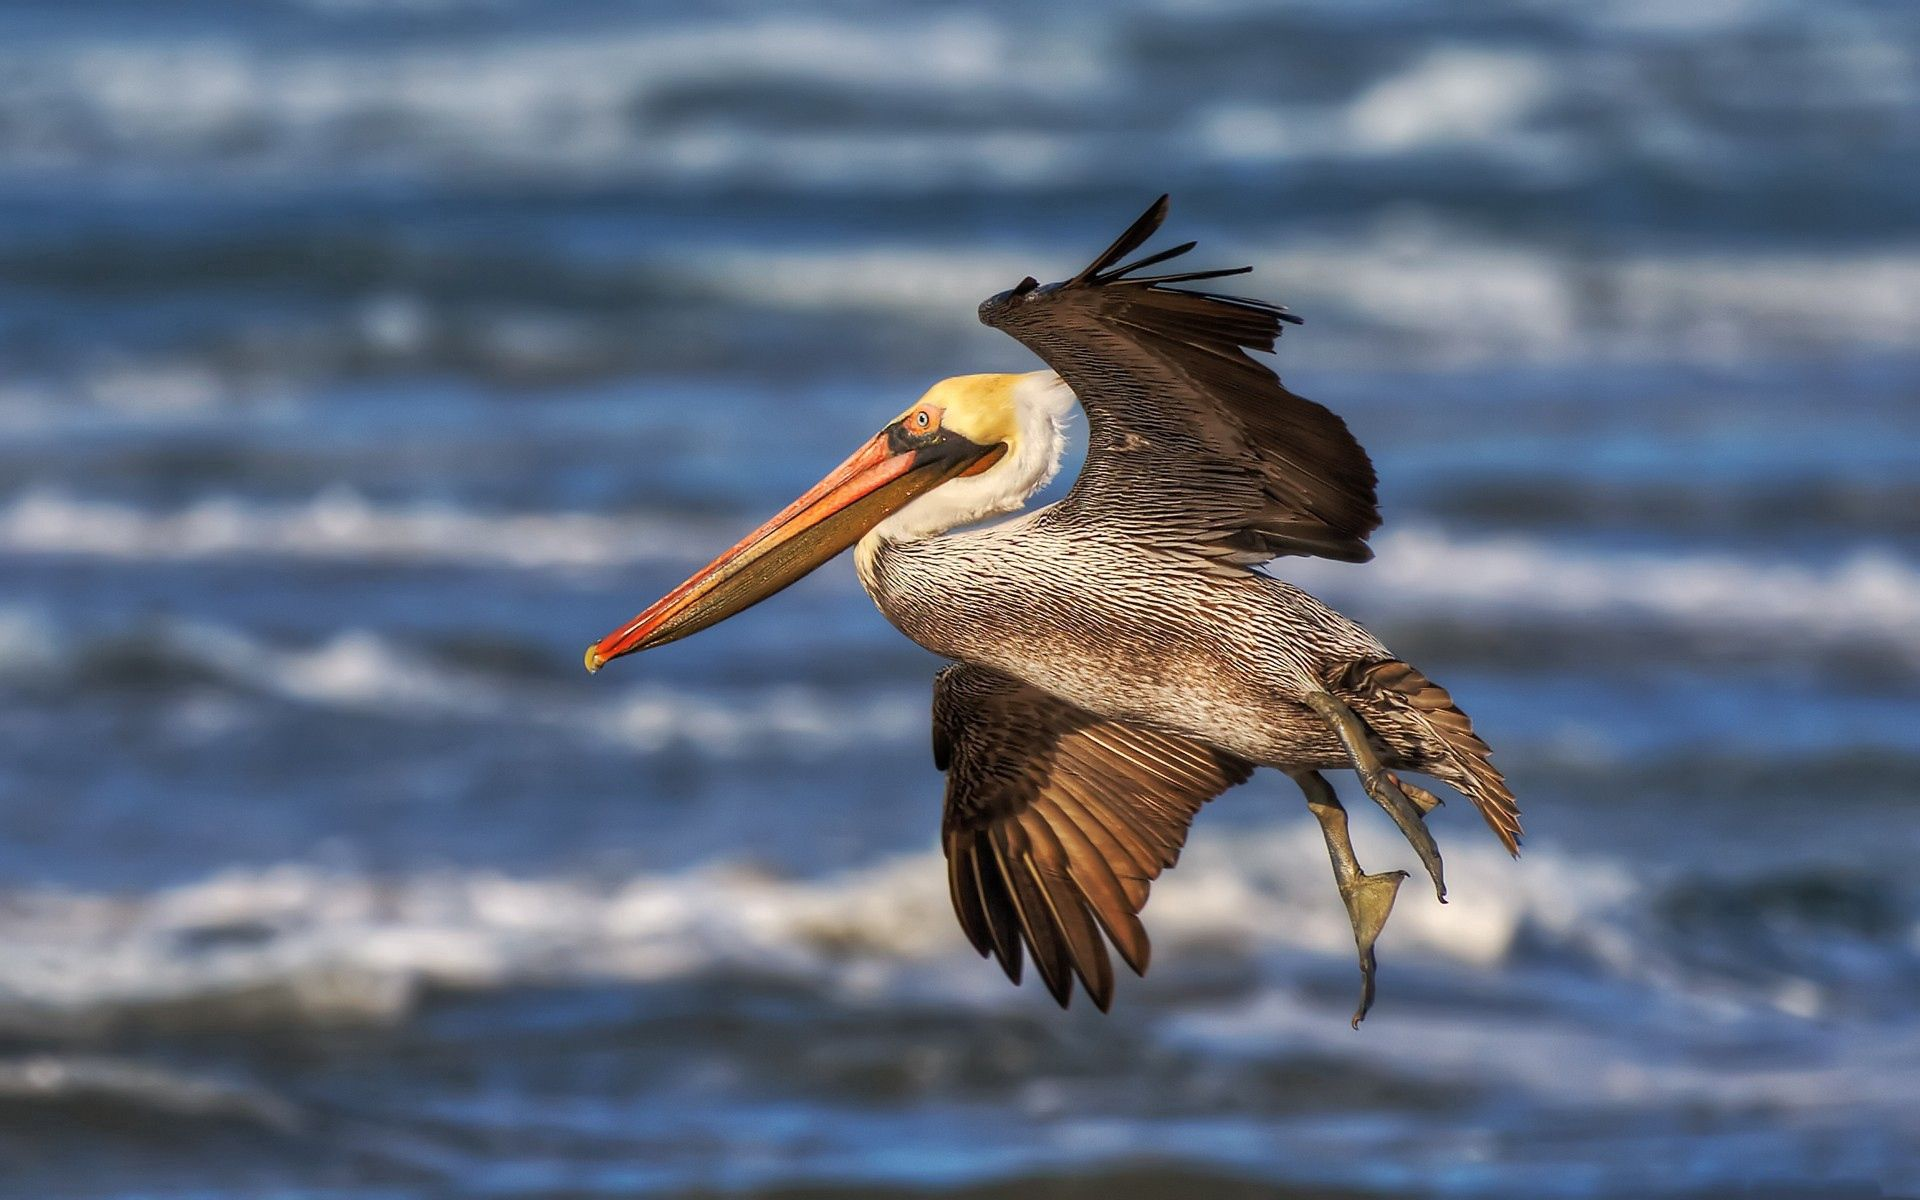 54849 download wallpaper Animals, Pelican, Flight, Beak, Waves screensavers and pictures for free